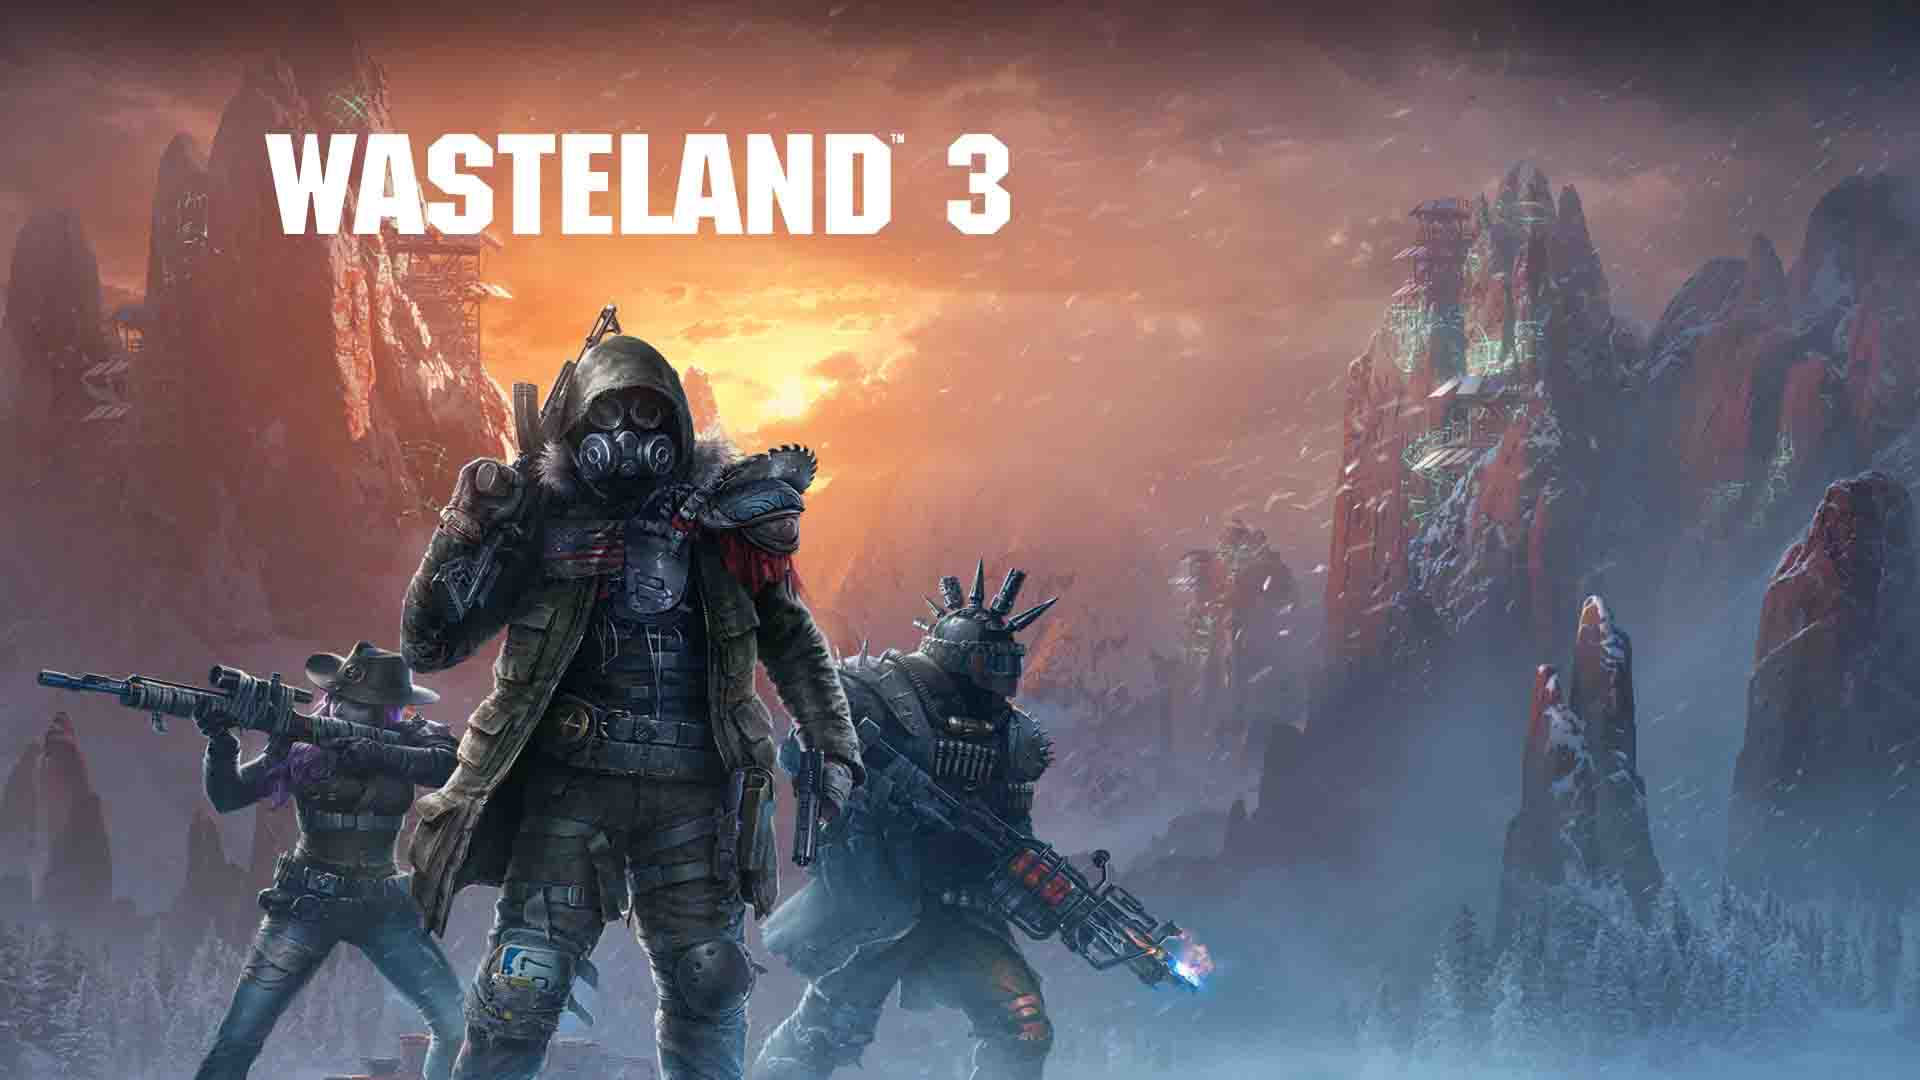 Fix Wasteland 3 'GOG.com servers returned an unknown error' (E9) | Install Button Greyed Out